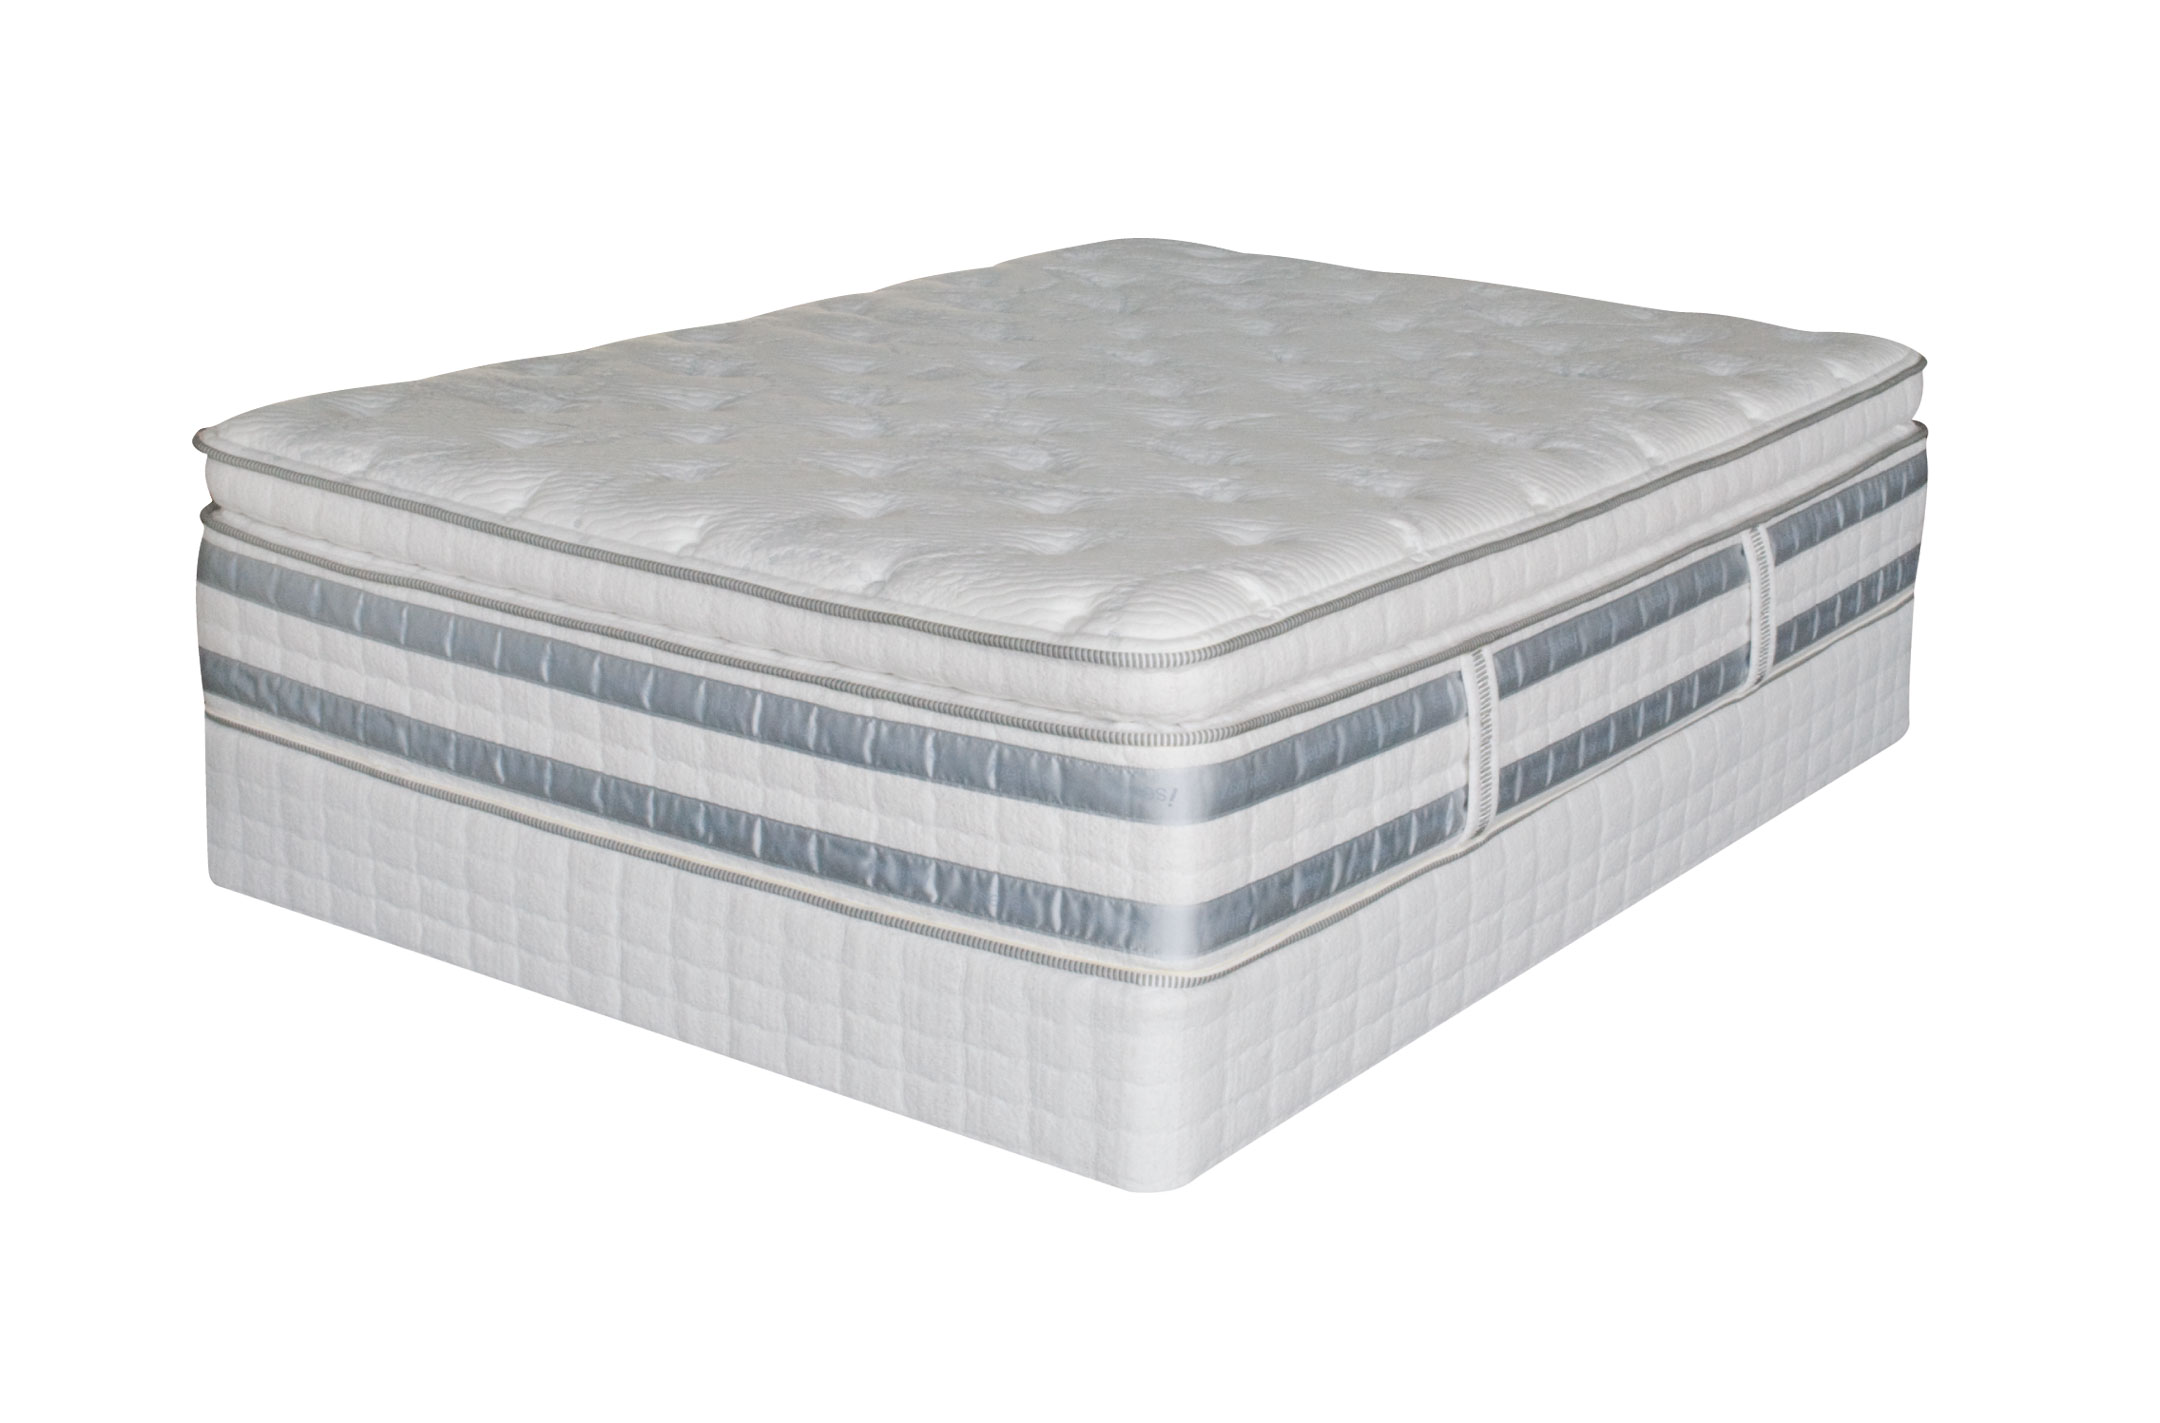 construction review mattress deep foam sleep into reviews serta gel a sinking layer inch queen memory